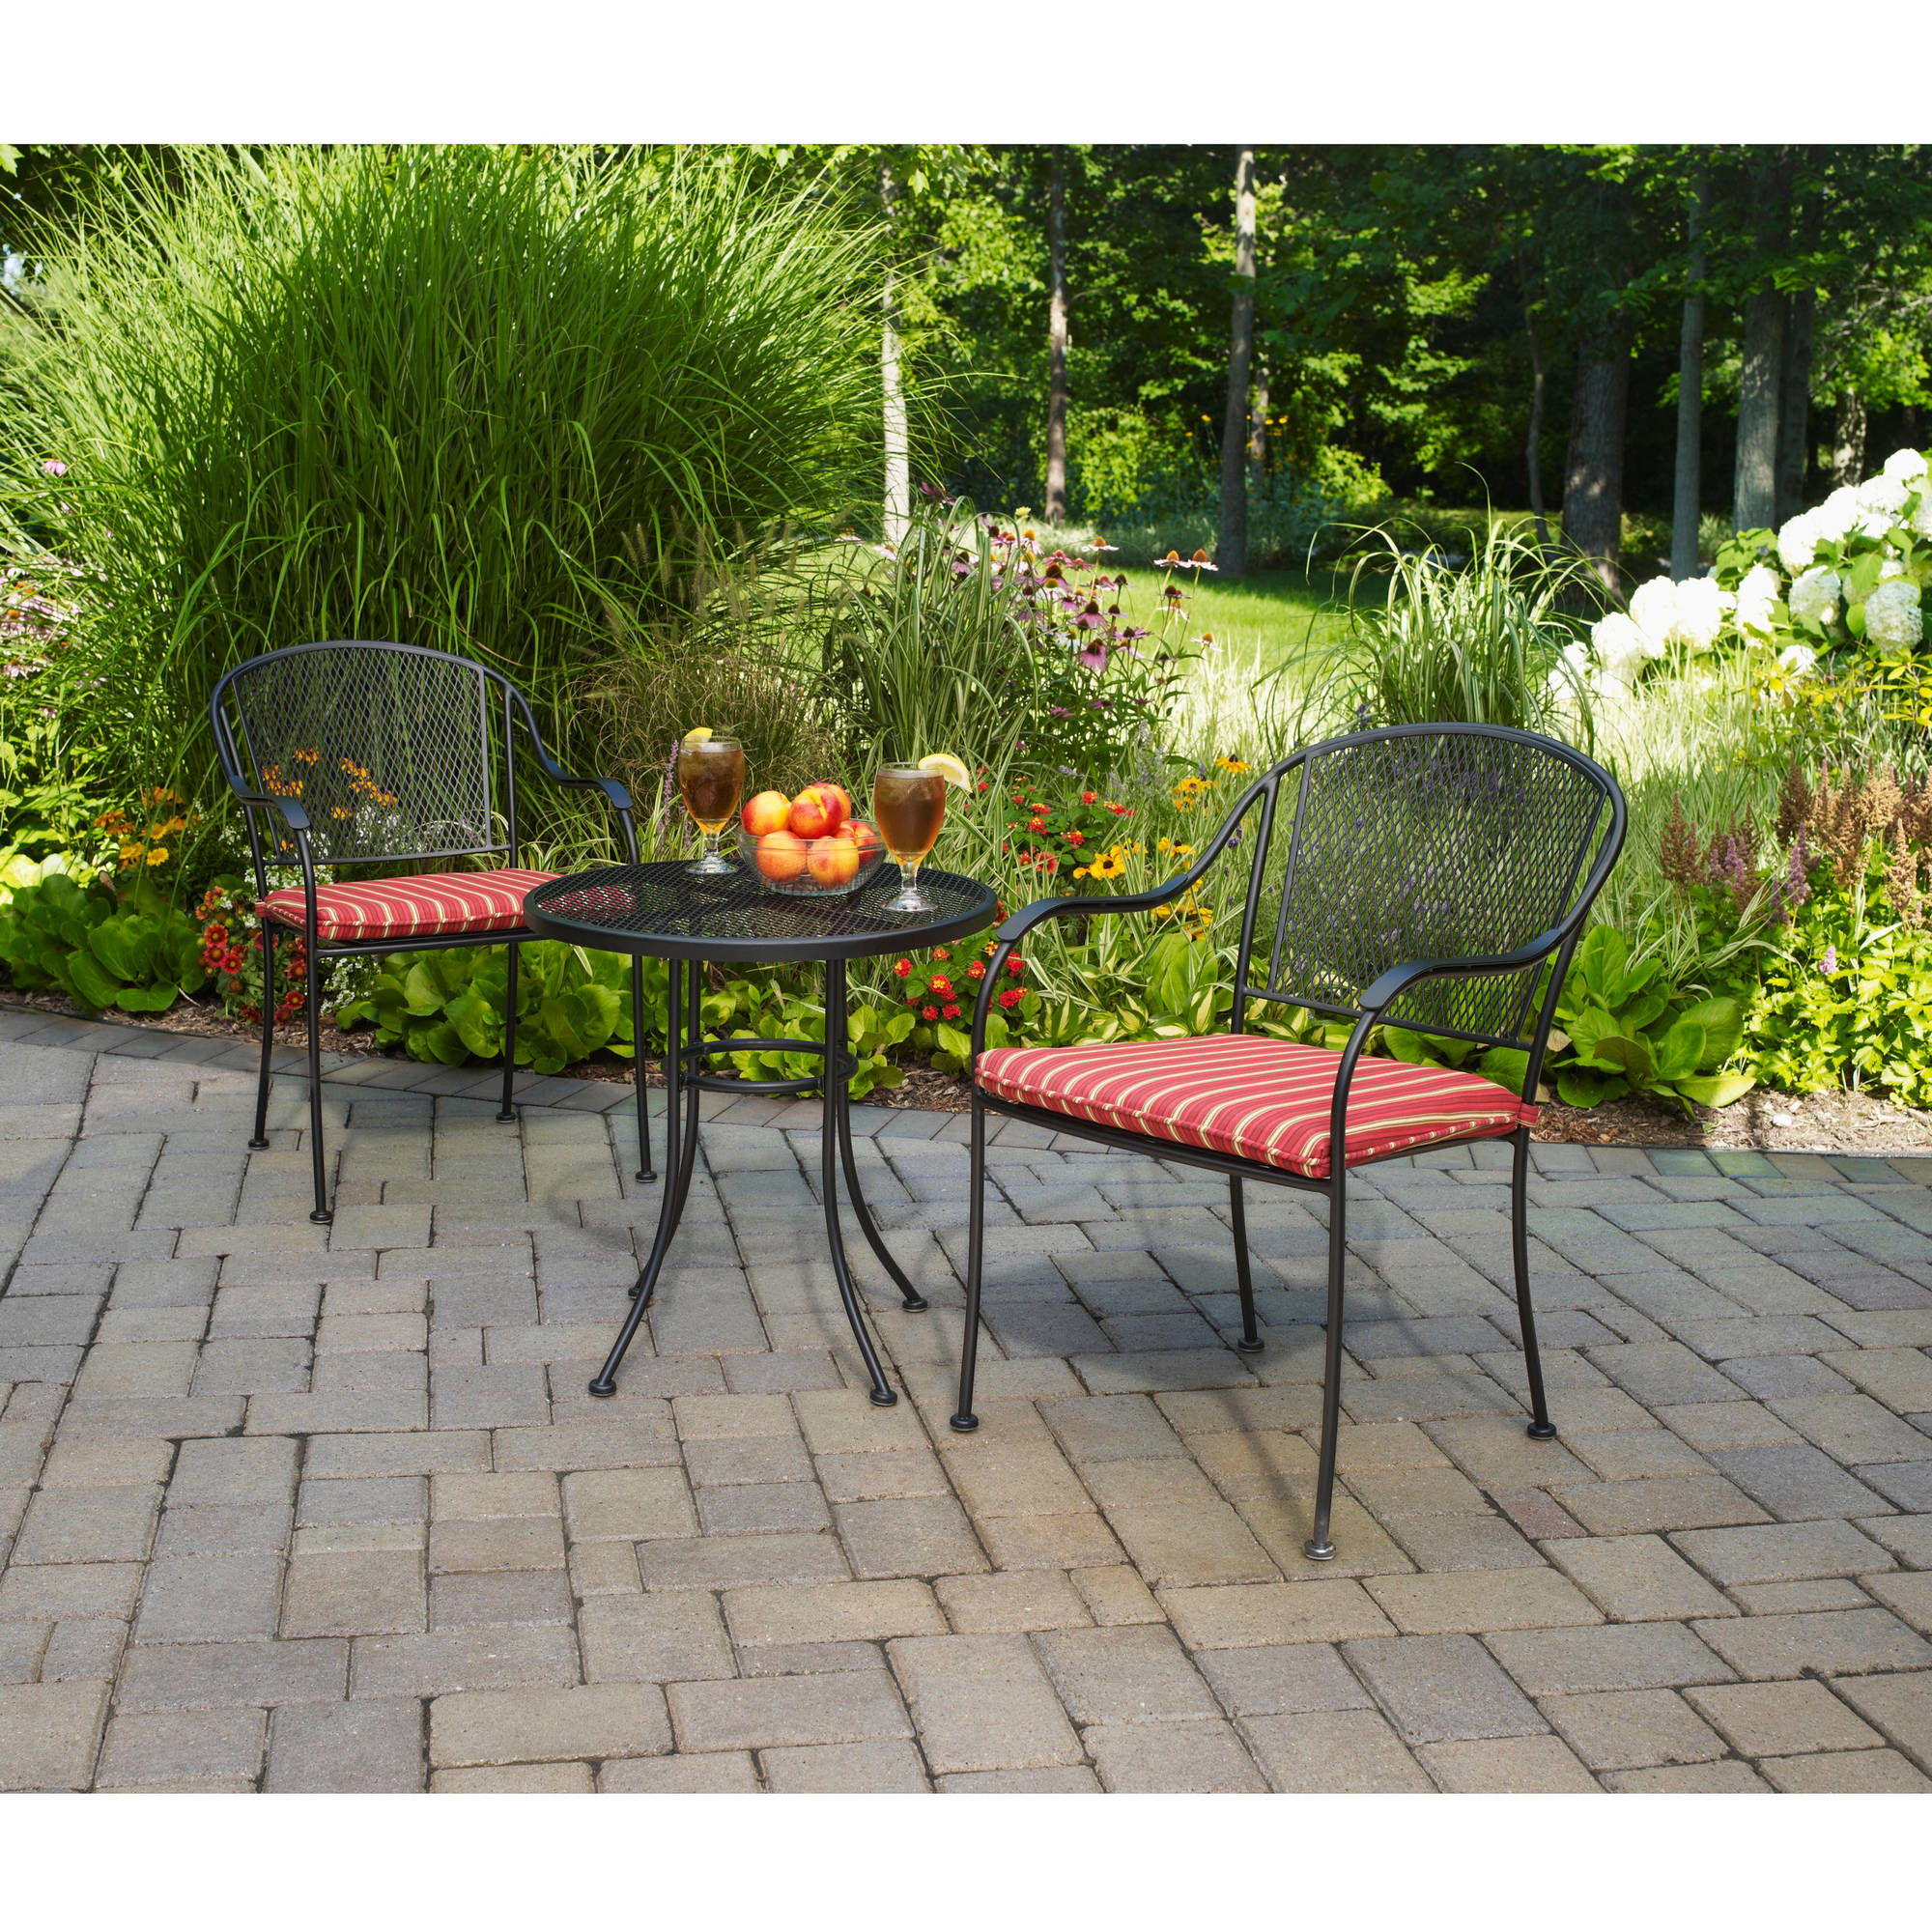 mainstays alexandra square 3piece outdoor bistro set grey with leaves seats 2 walmartcom - Cheap Patio Sets